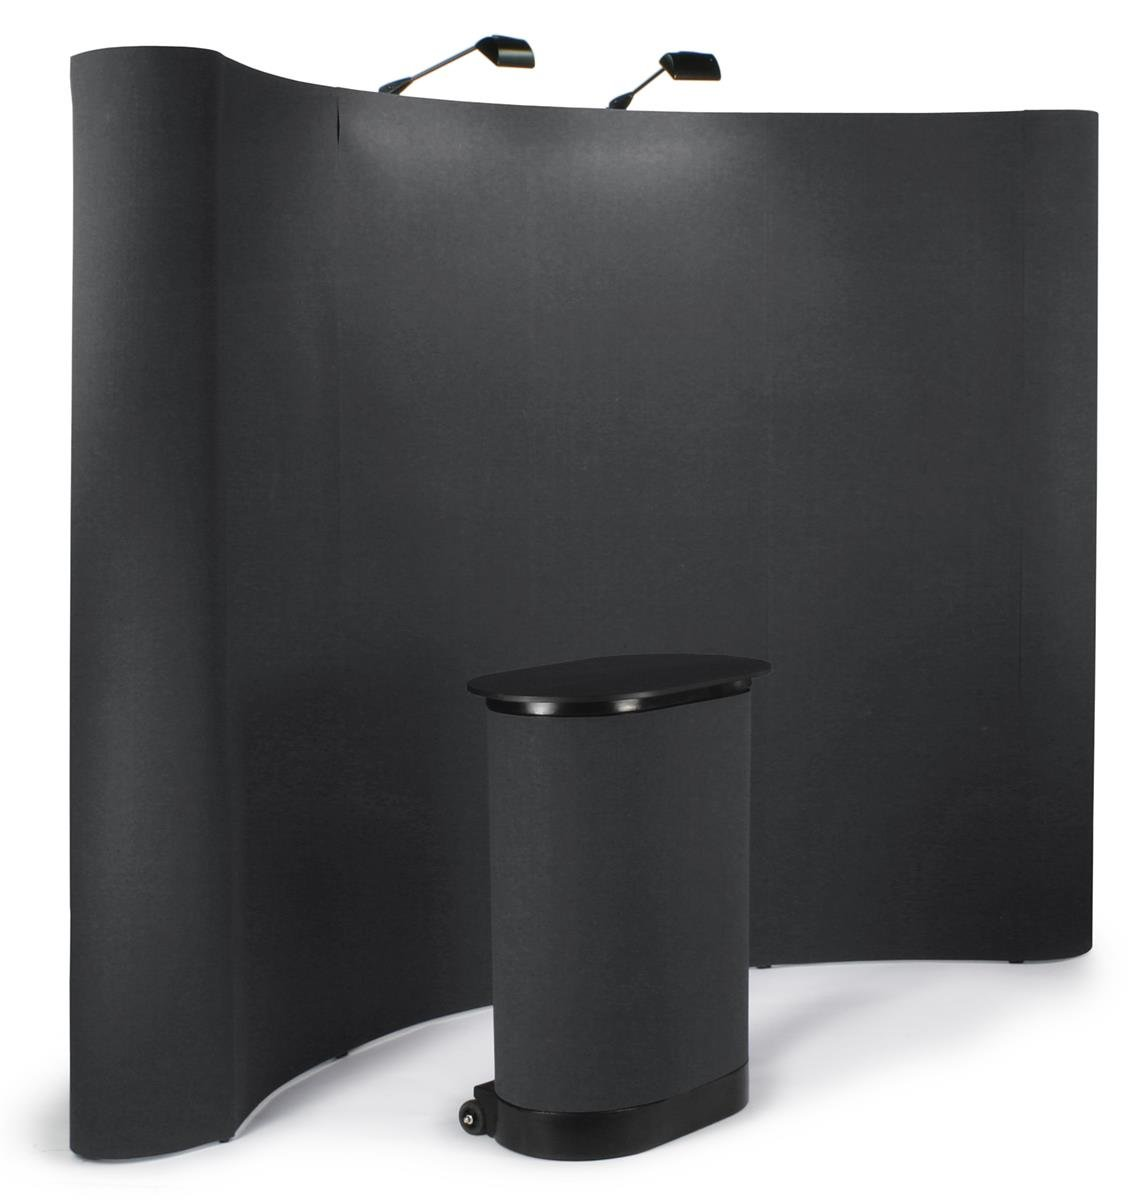 Displays2go 10-Feet Curved Pop-Up Trade Show Portable Display Booth with Podium Travel Case - Black (TEPUVF10BK)